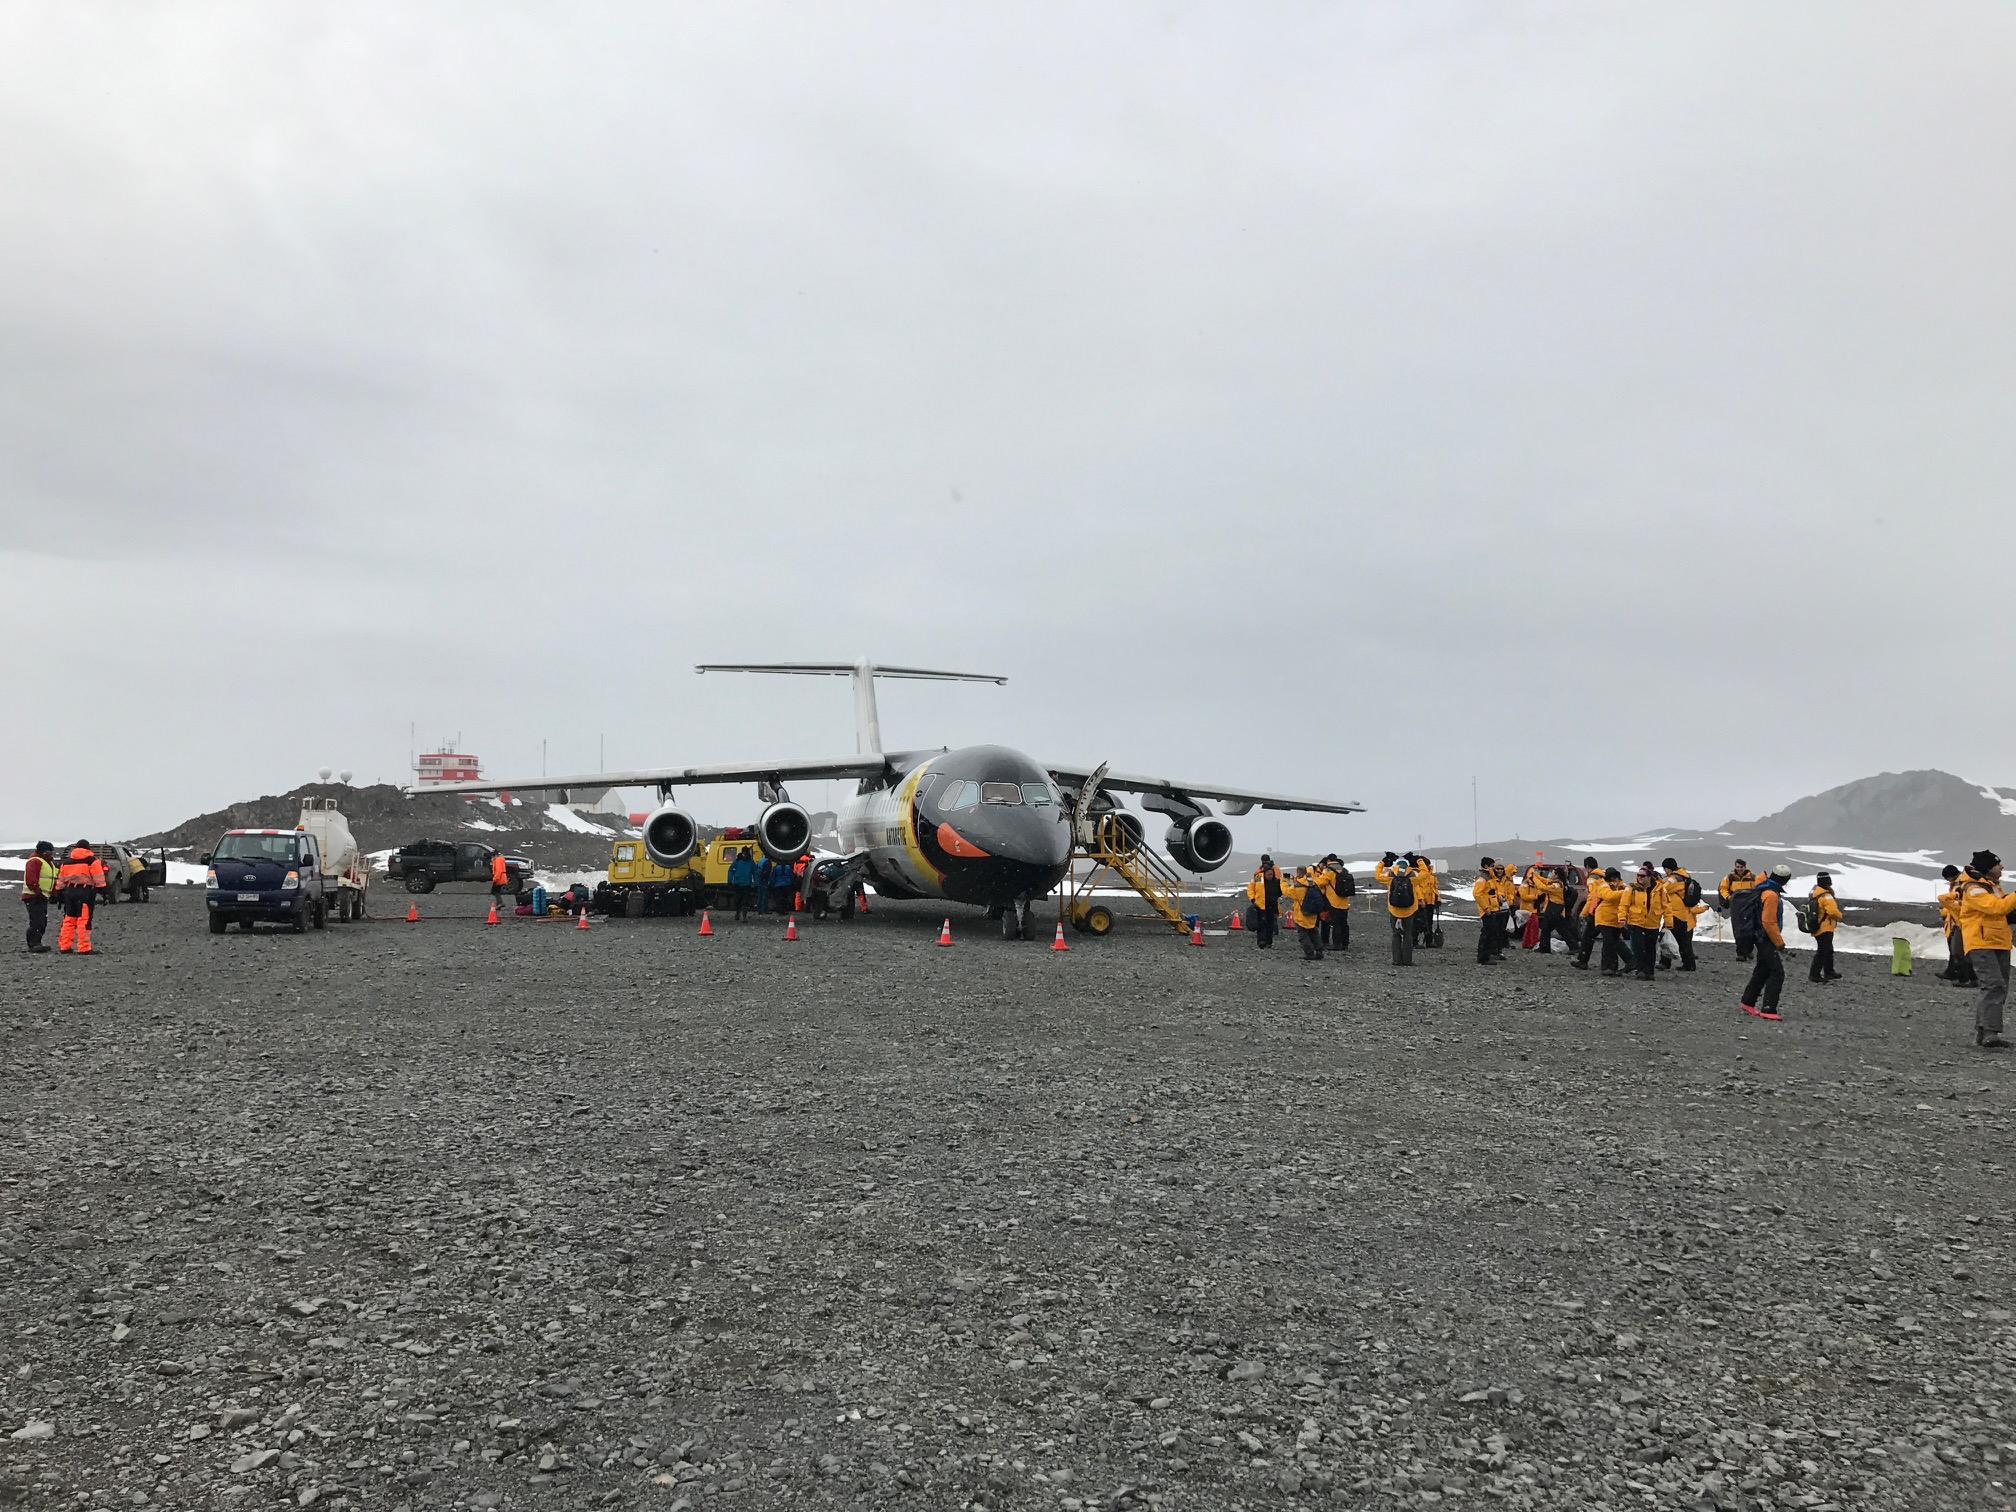 Passengers set foot on King George Island after a comfortable charter flight over the Drake Passage on a Fly-Cruise expedition to Antarctica.